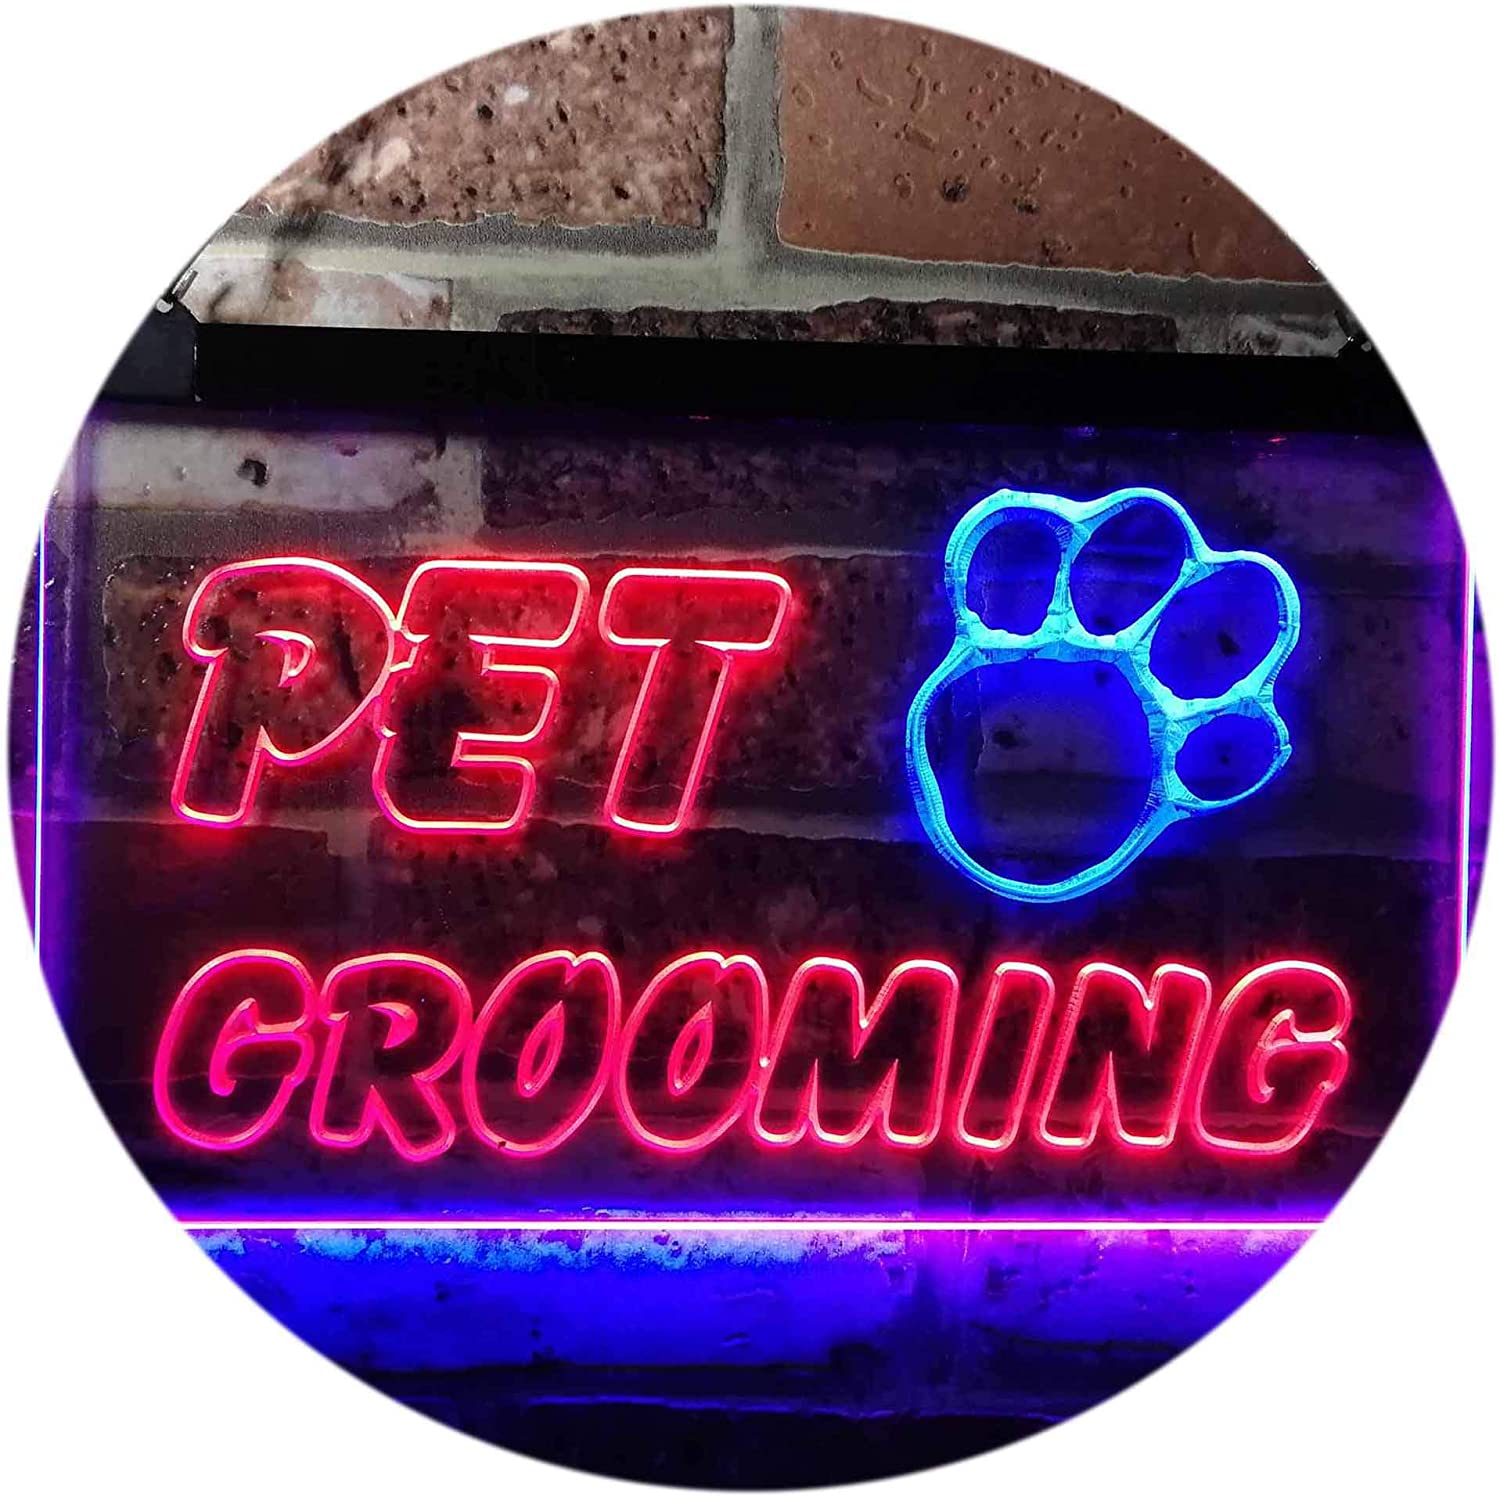 ADVPRO Pet Grooming Shop Dog Be super Super beauty product restock quality top! welcome Cat Vet Neon Color LED Dual Sign Bl